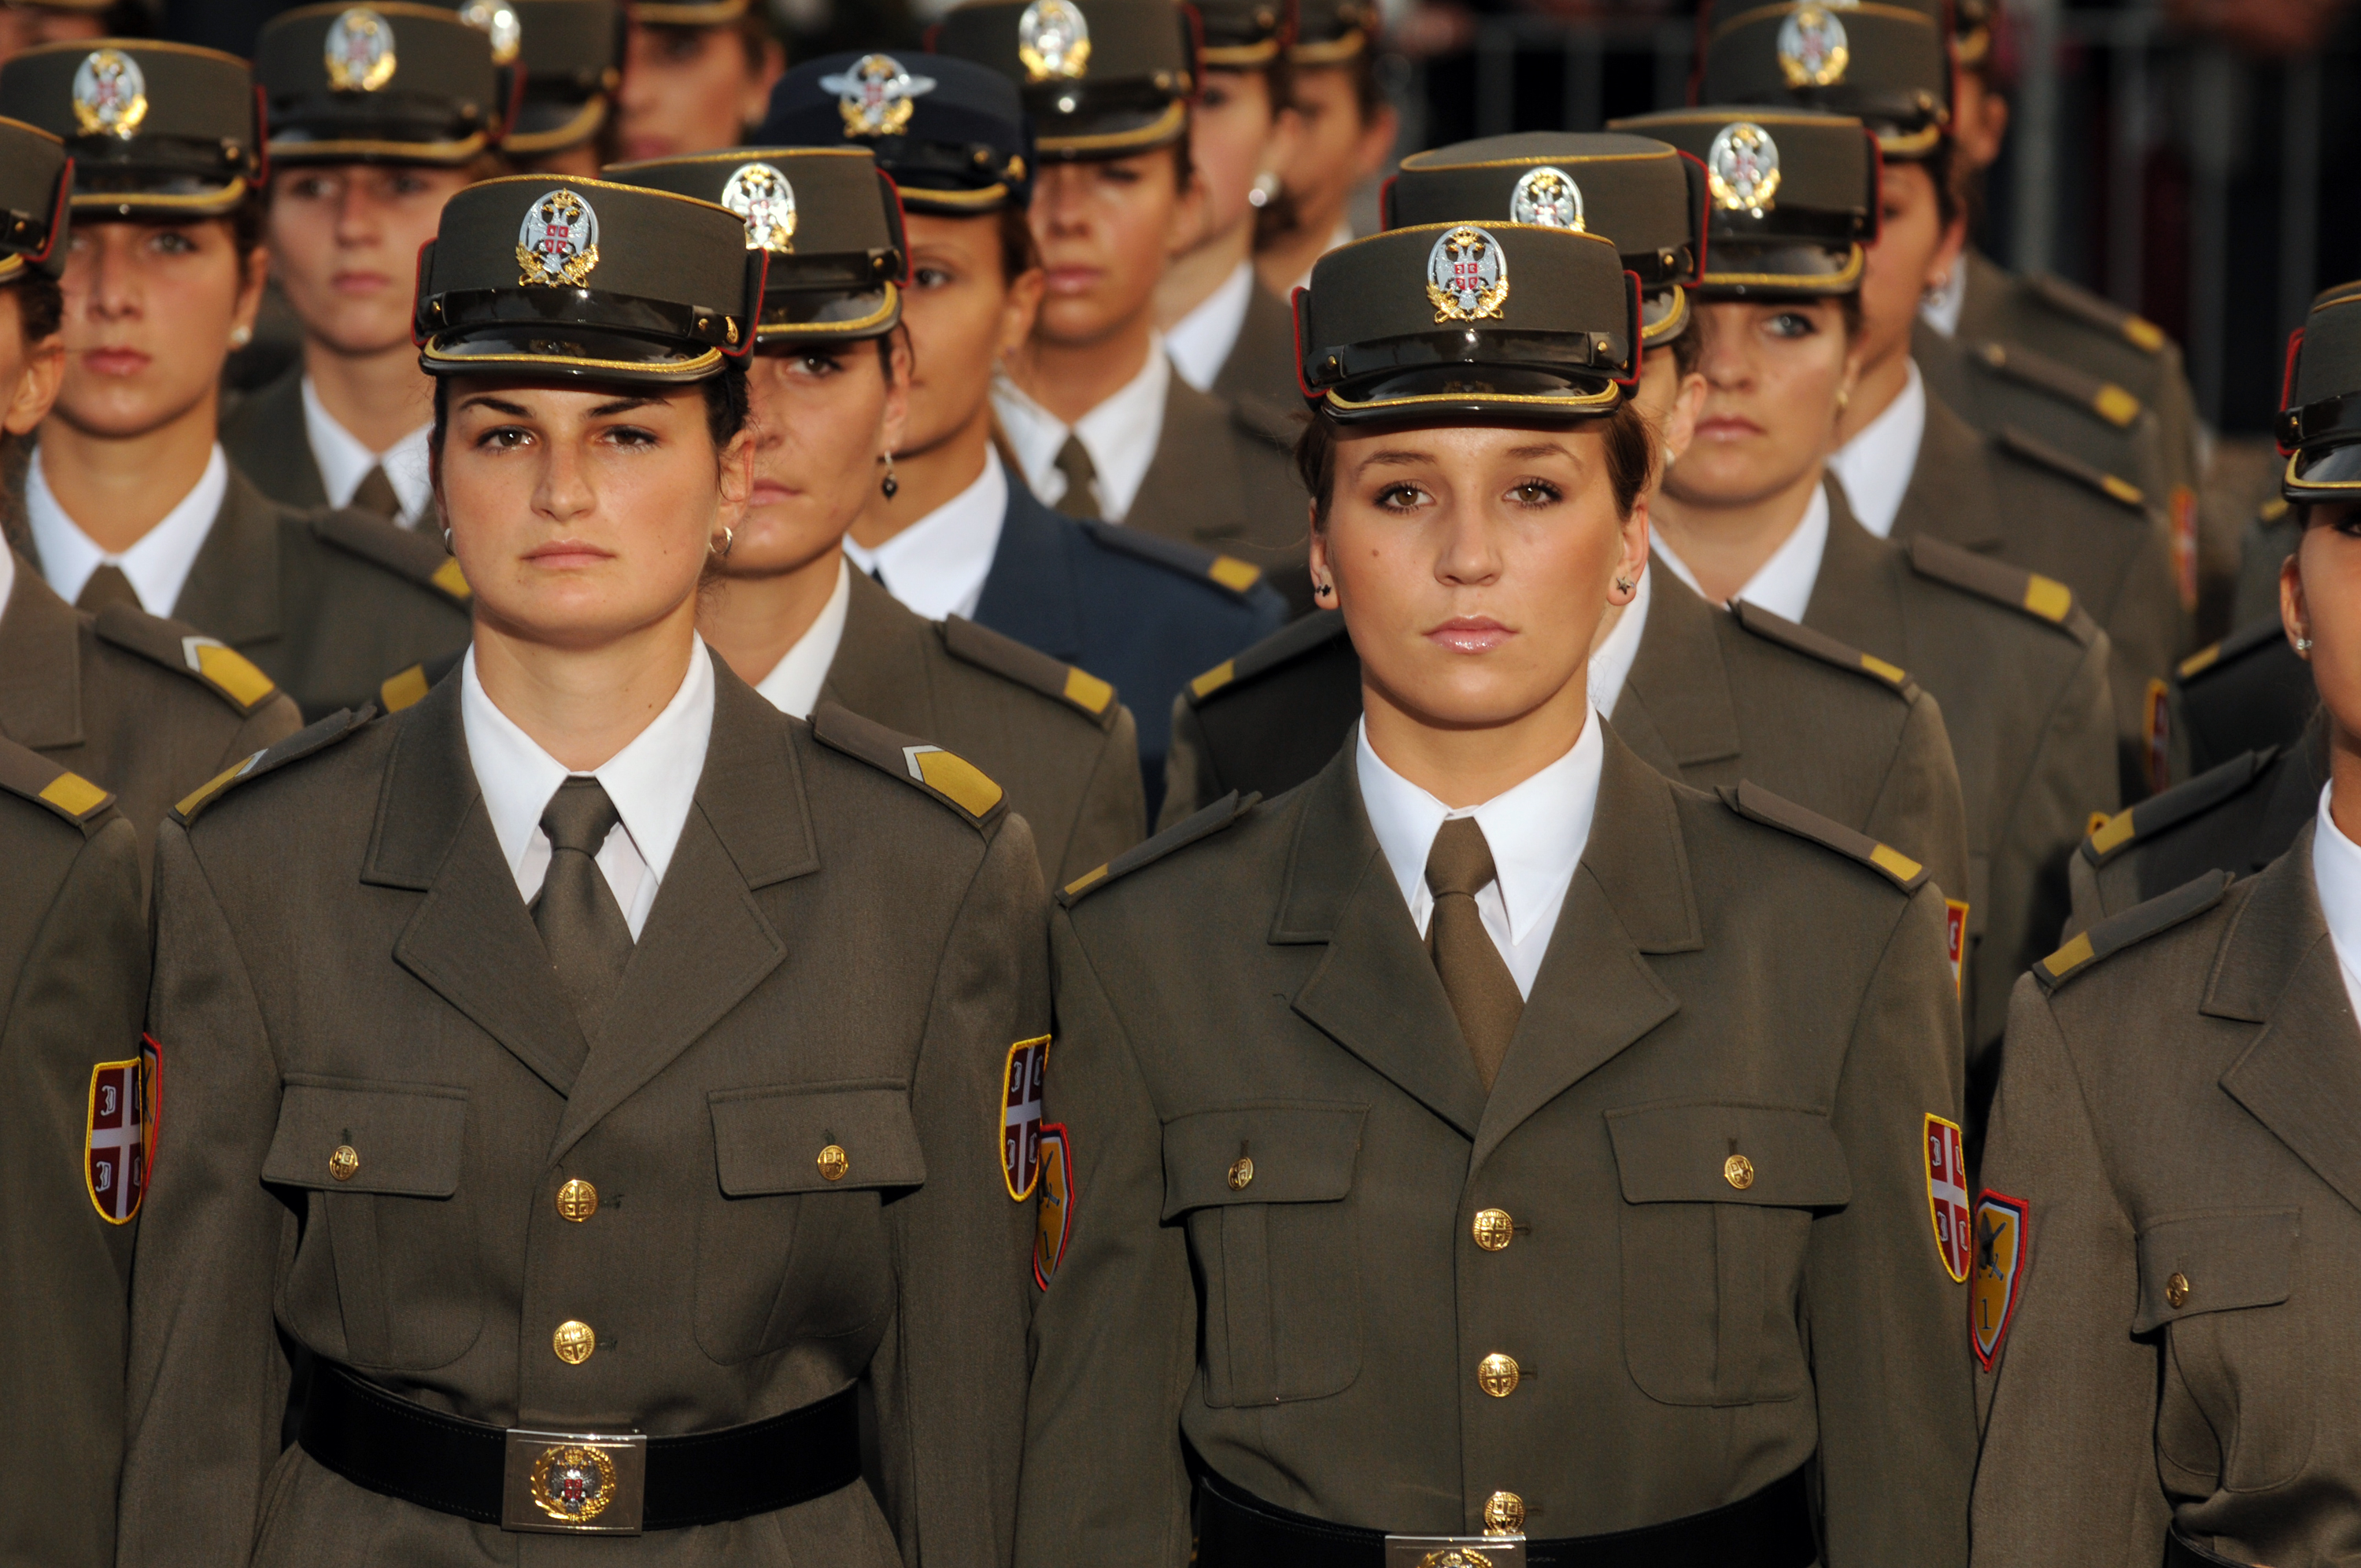 Serbian officer cadets 2